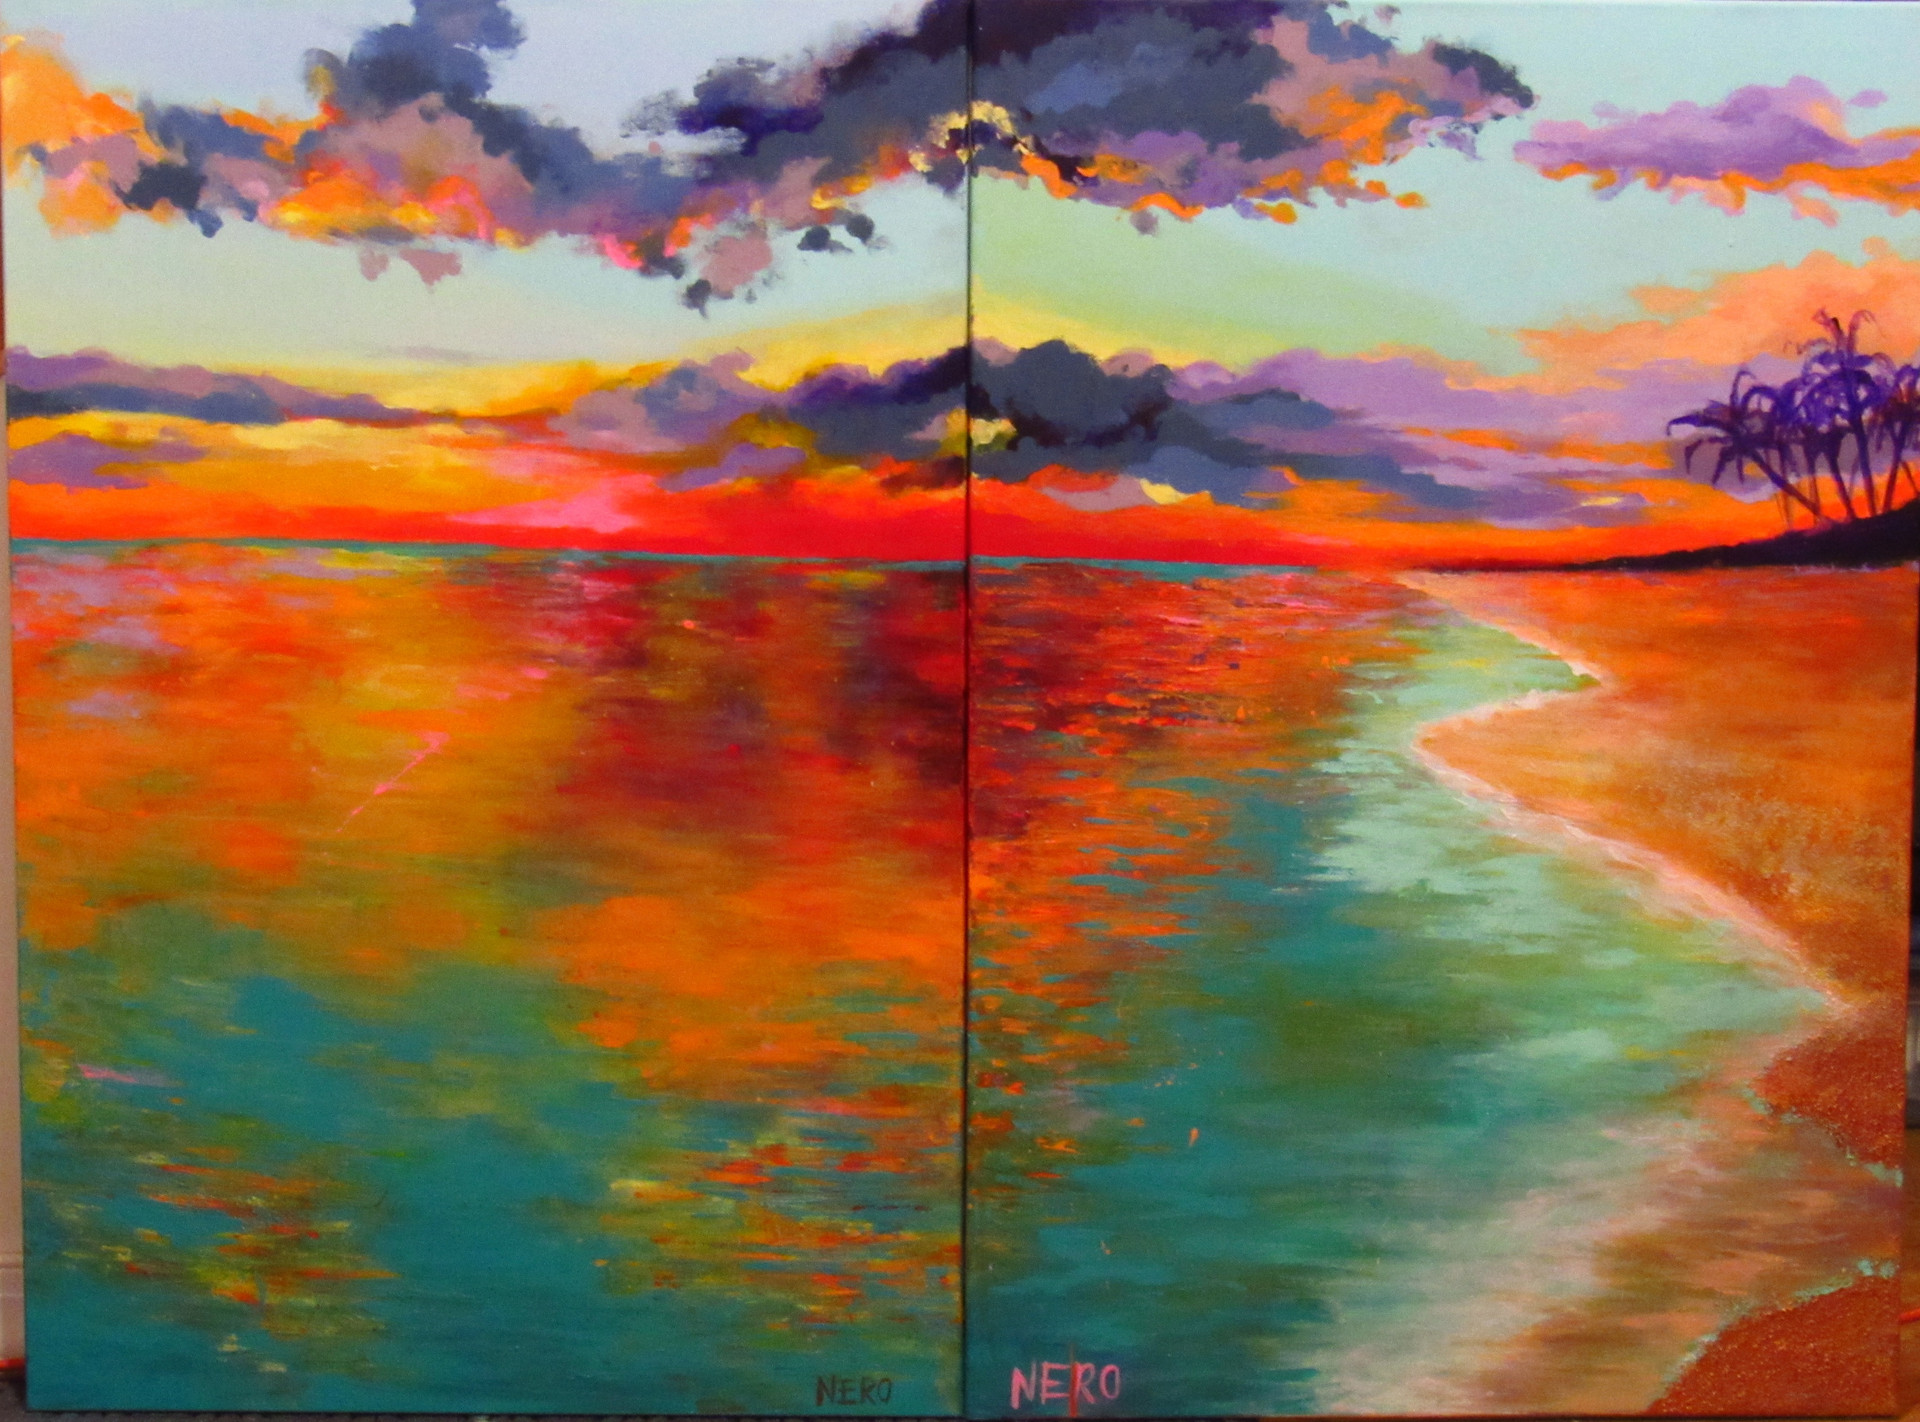 Caribbean Sunset (1 & 2 combined)